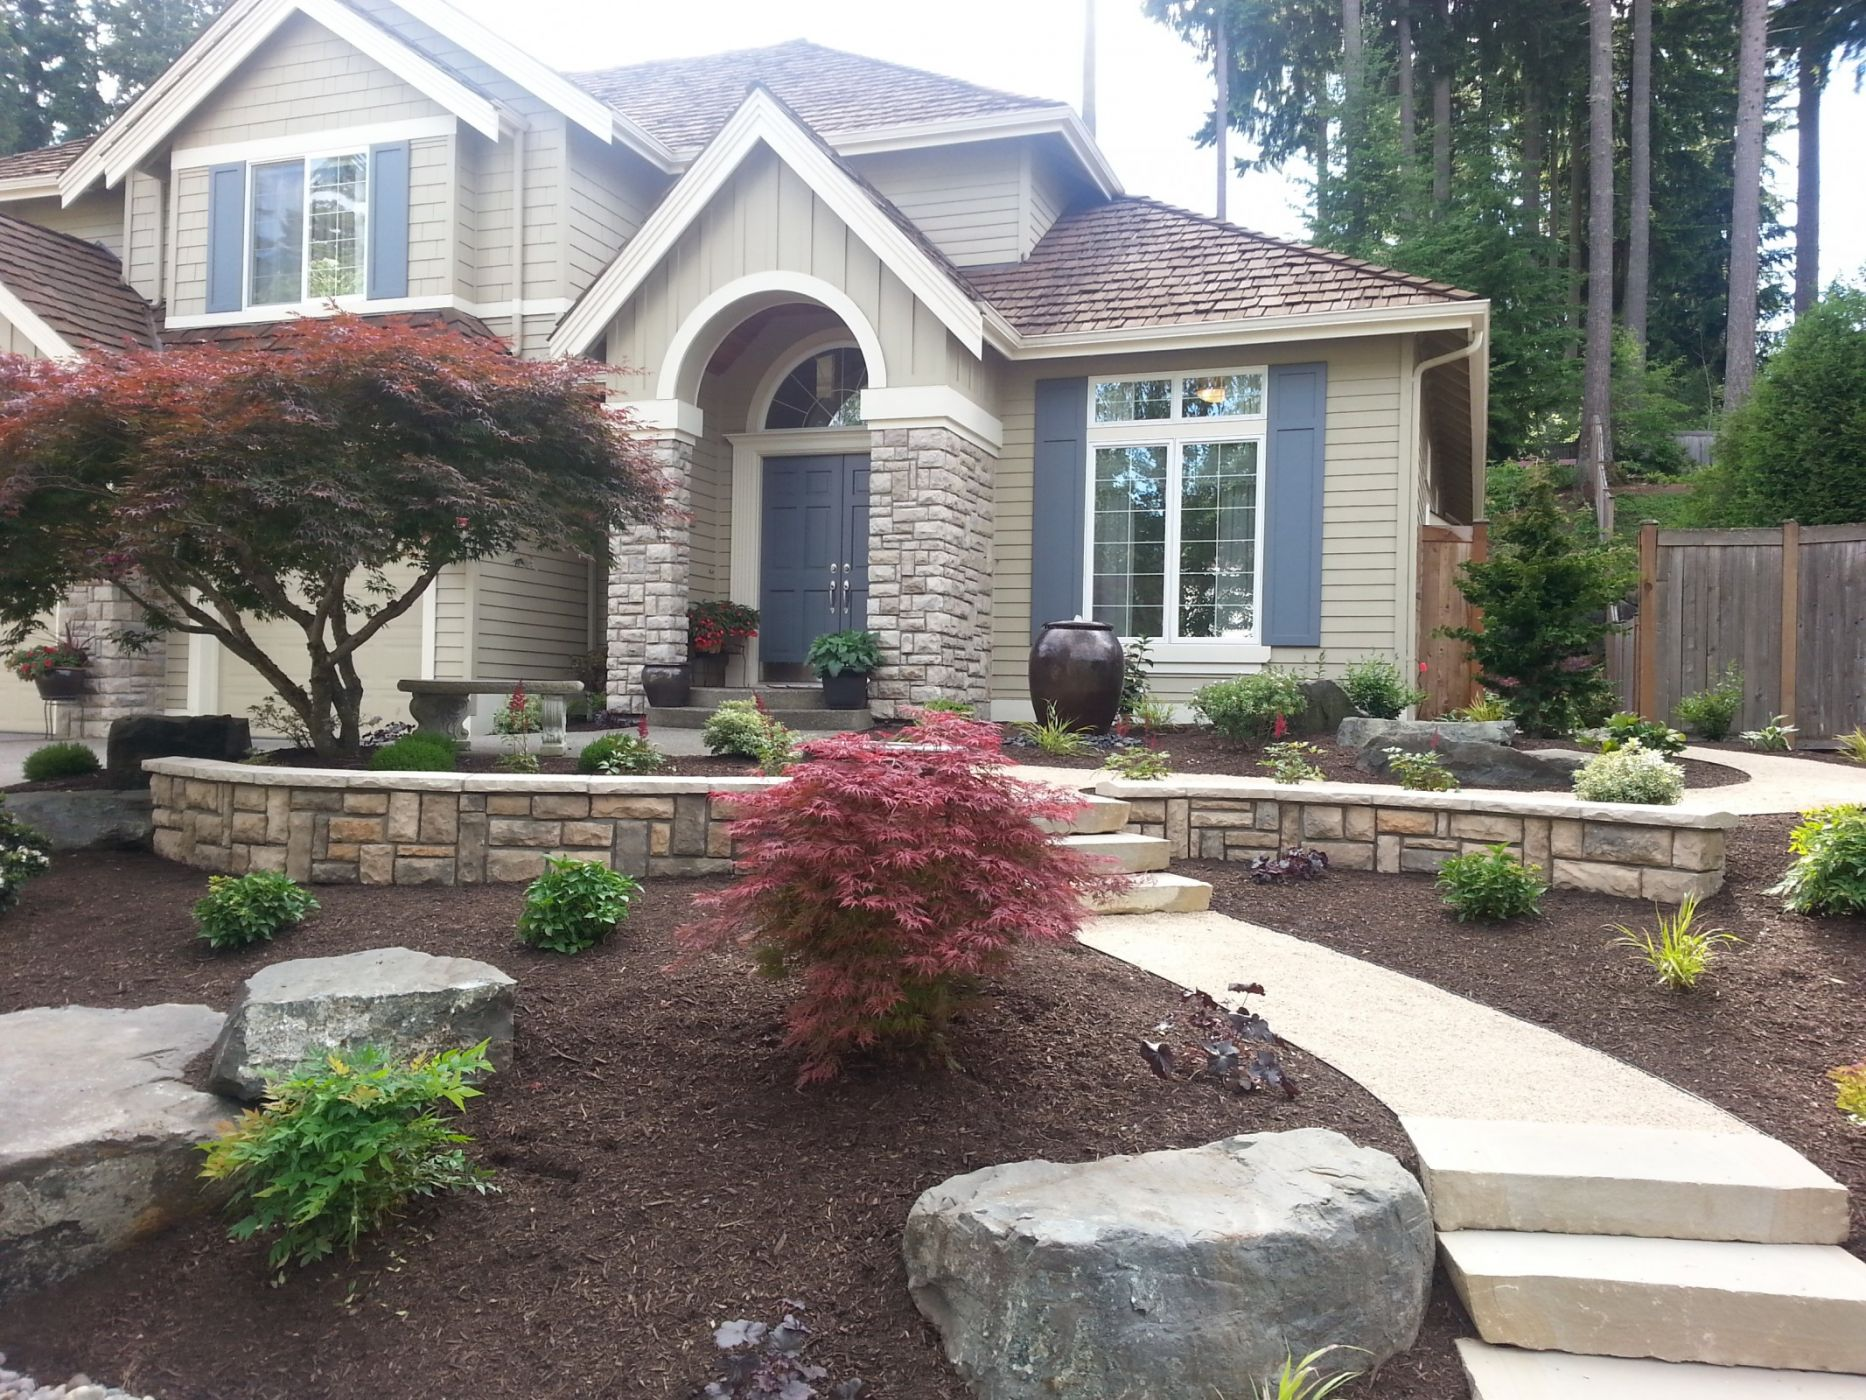 Janika landscaping ideas front yard illinois here for Landscape design ideas front of house